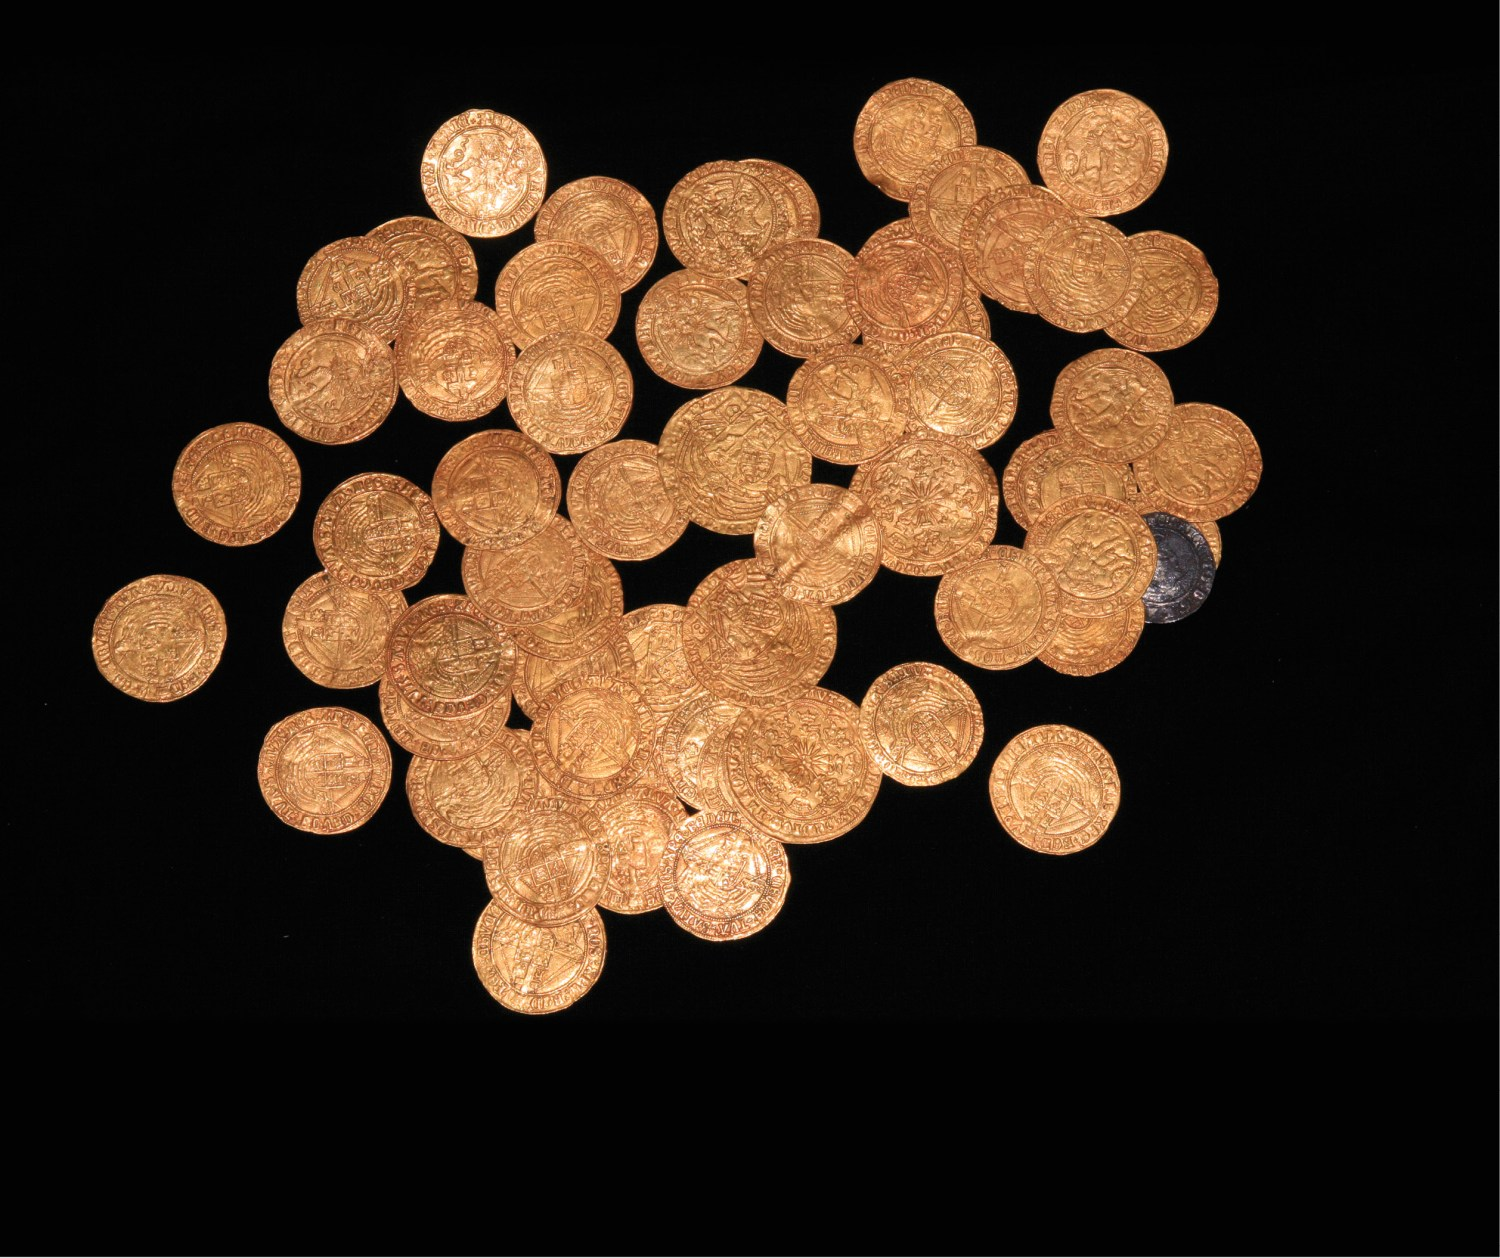 left A hoard of 63 gold and one silver coin, spanning the late 15th and 16th centuries in date, has been discovered in the New Forest area by a family gardening during lockdown.